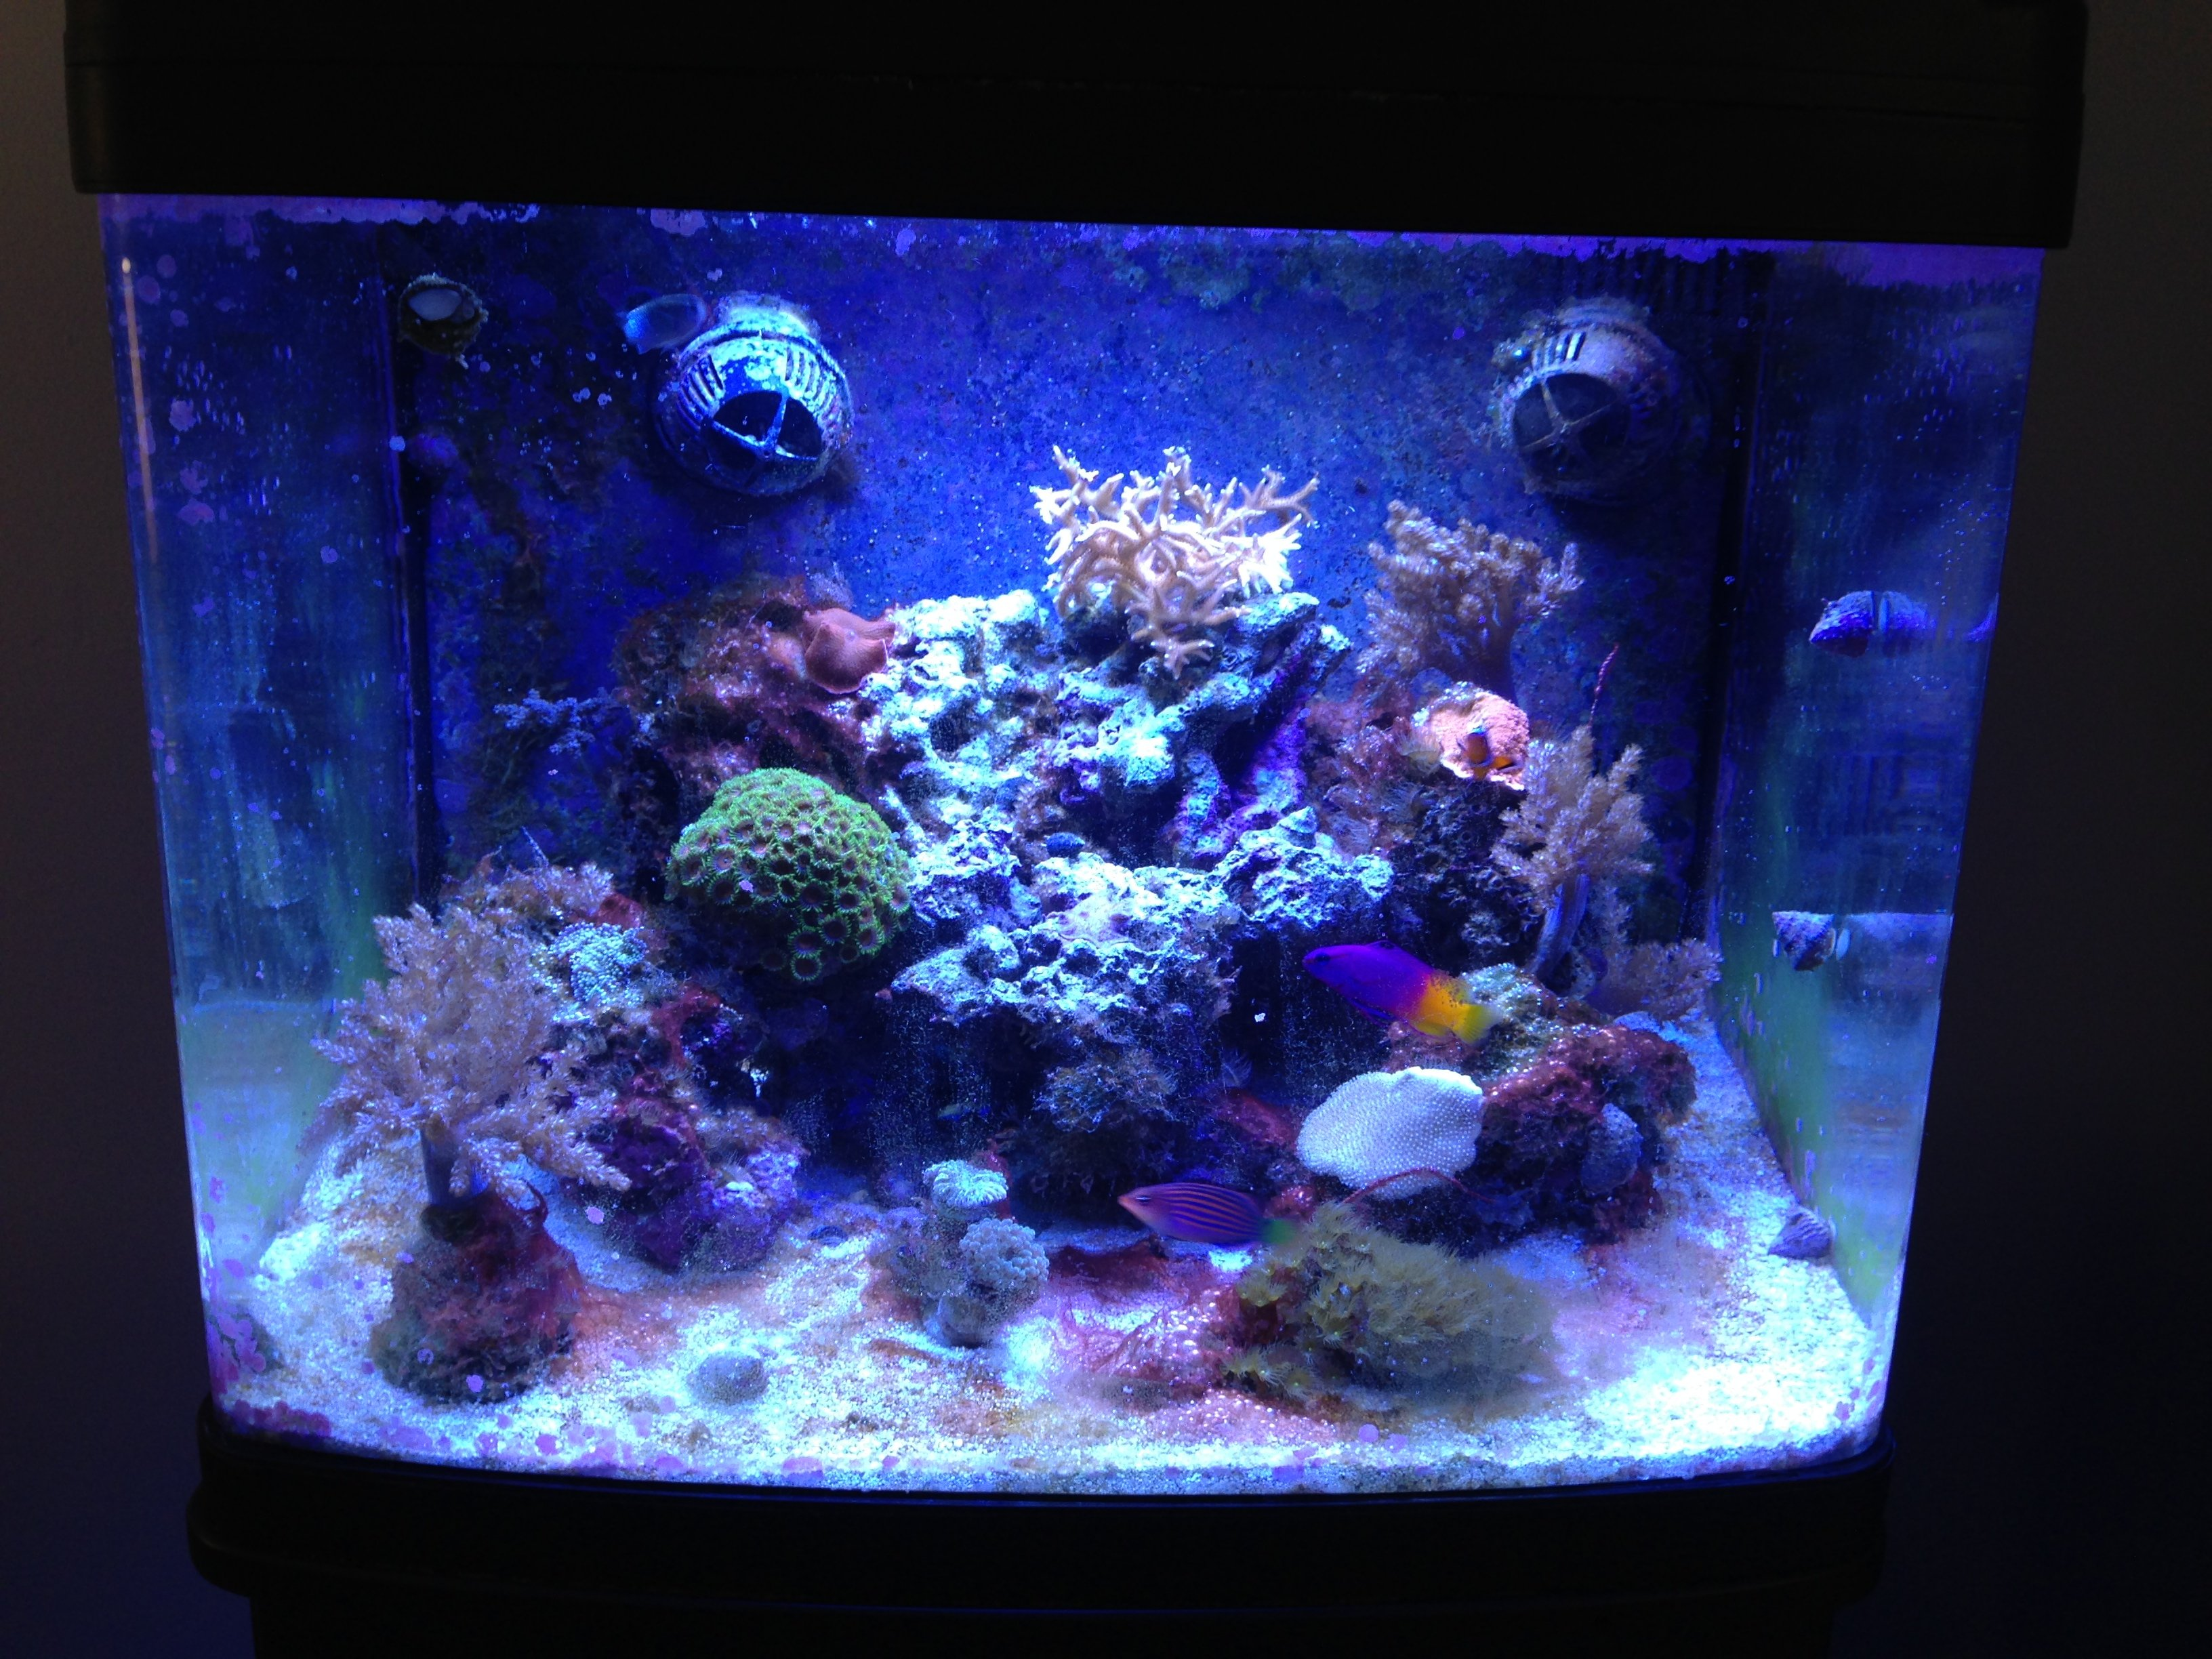 Freshwater fish tank alkalinity - Here Are The Current Tank Parameters Magnesium 1320 Phosphate 0 Ammonia 0 3 Nitrate 0 Calcium 420 79 Degrees Alkalinity 3 4 Ph 8 6 Salinity 1 0245